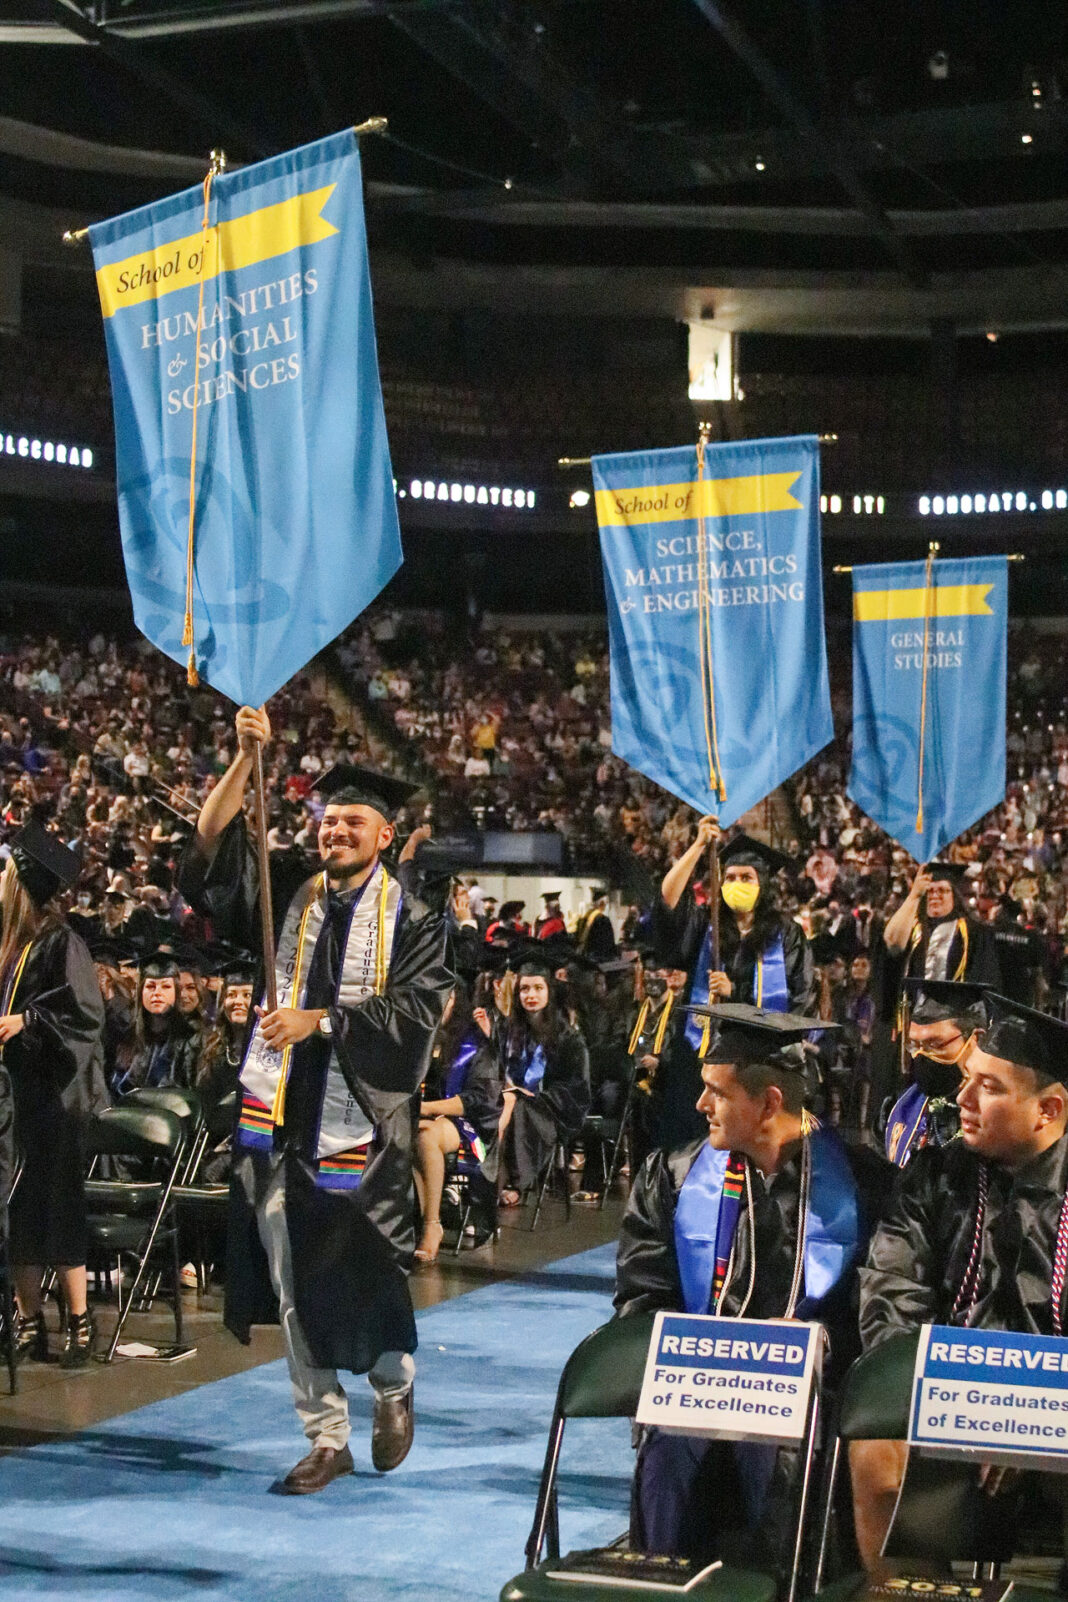 Graduates of Excellence carrying banners